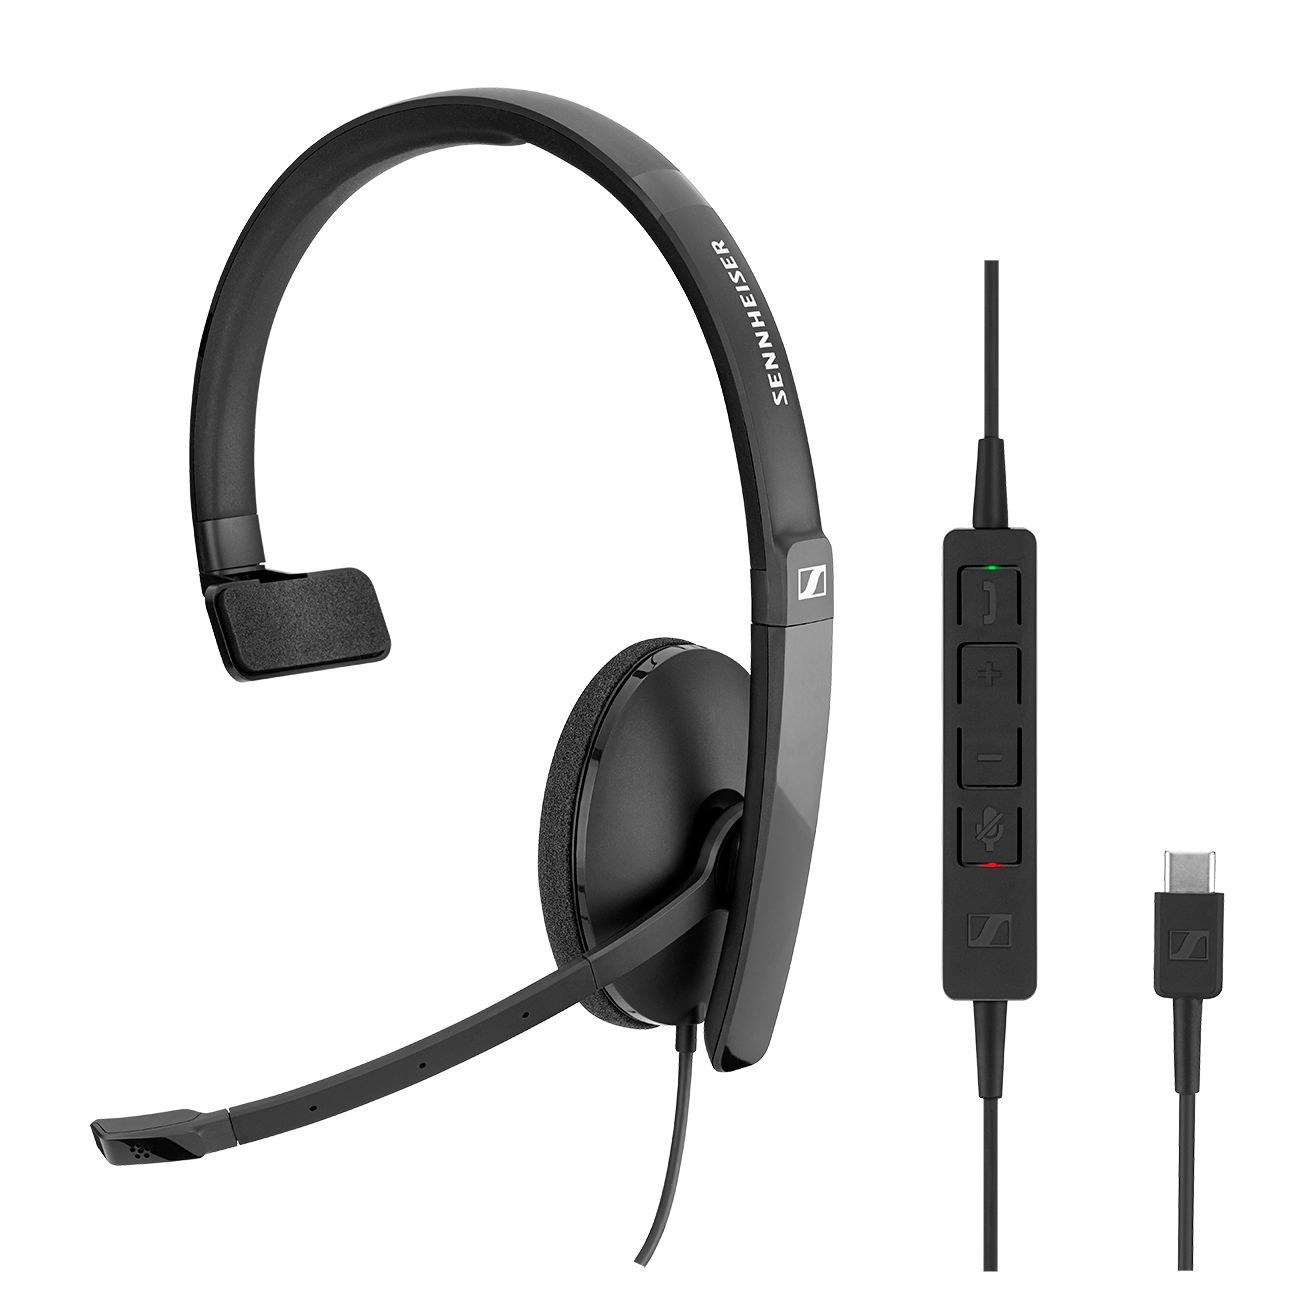 EPOS l Sennheiser ADAPT SC130 USB-C Wired monaural USB headset. Skype for Business certified and UC optimized